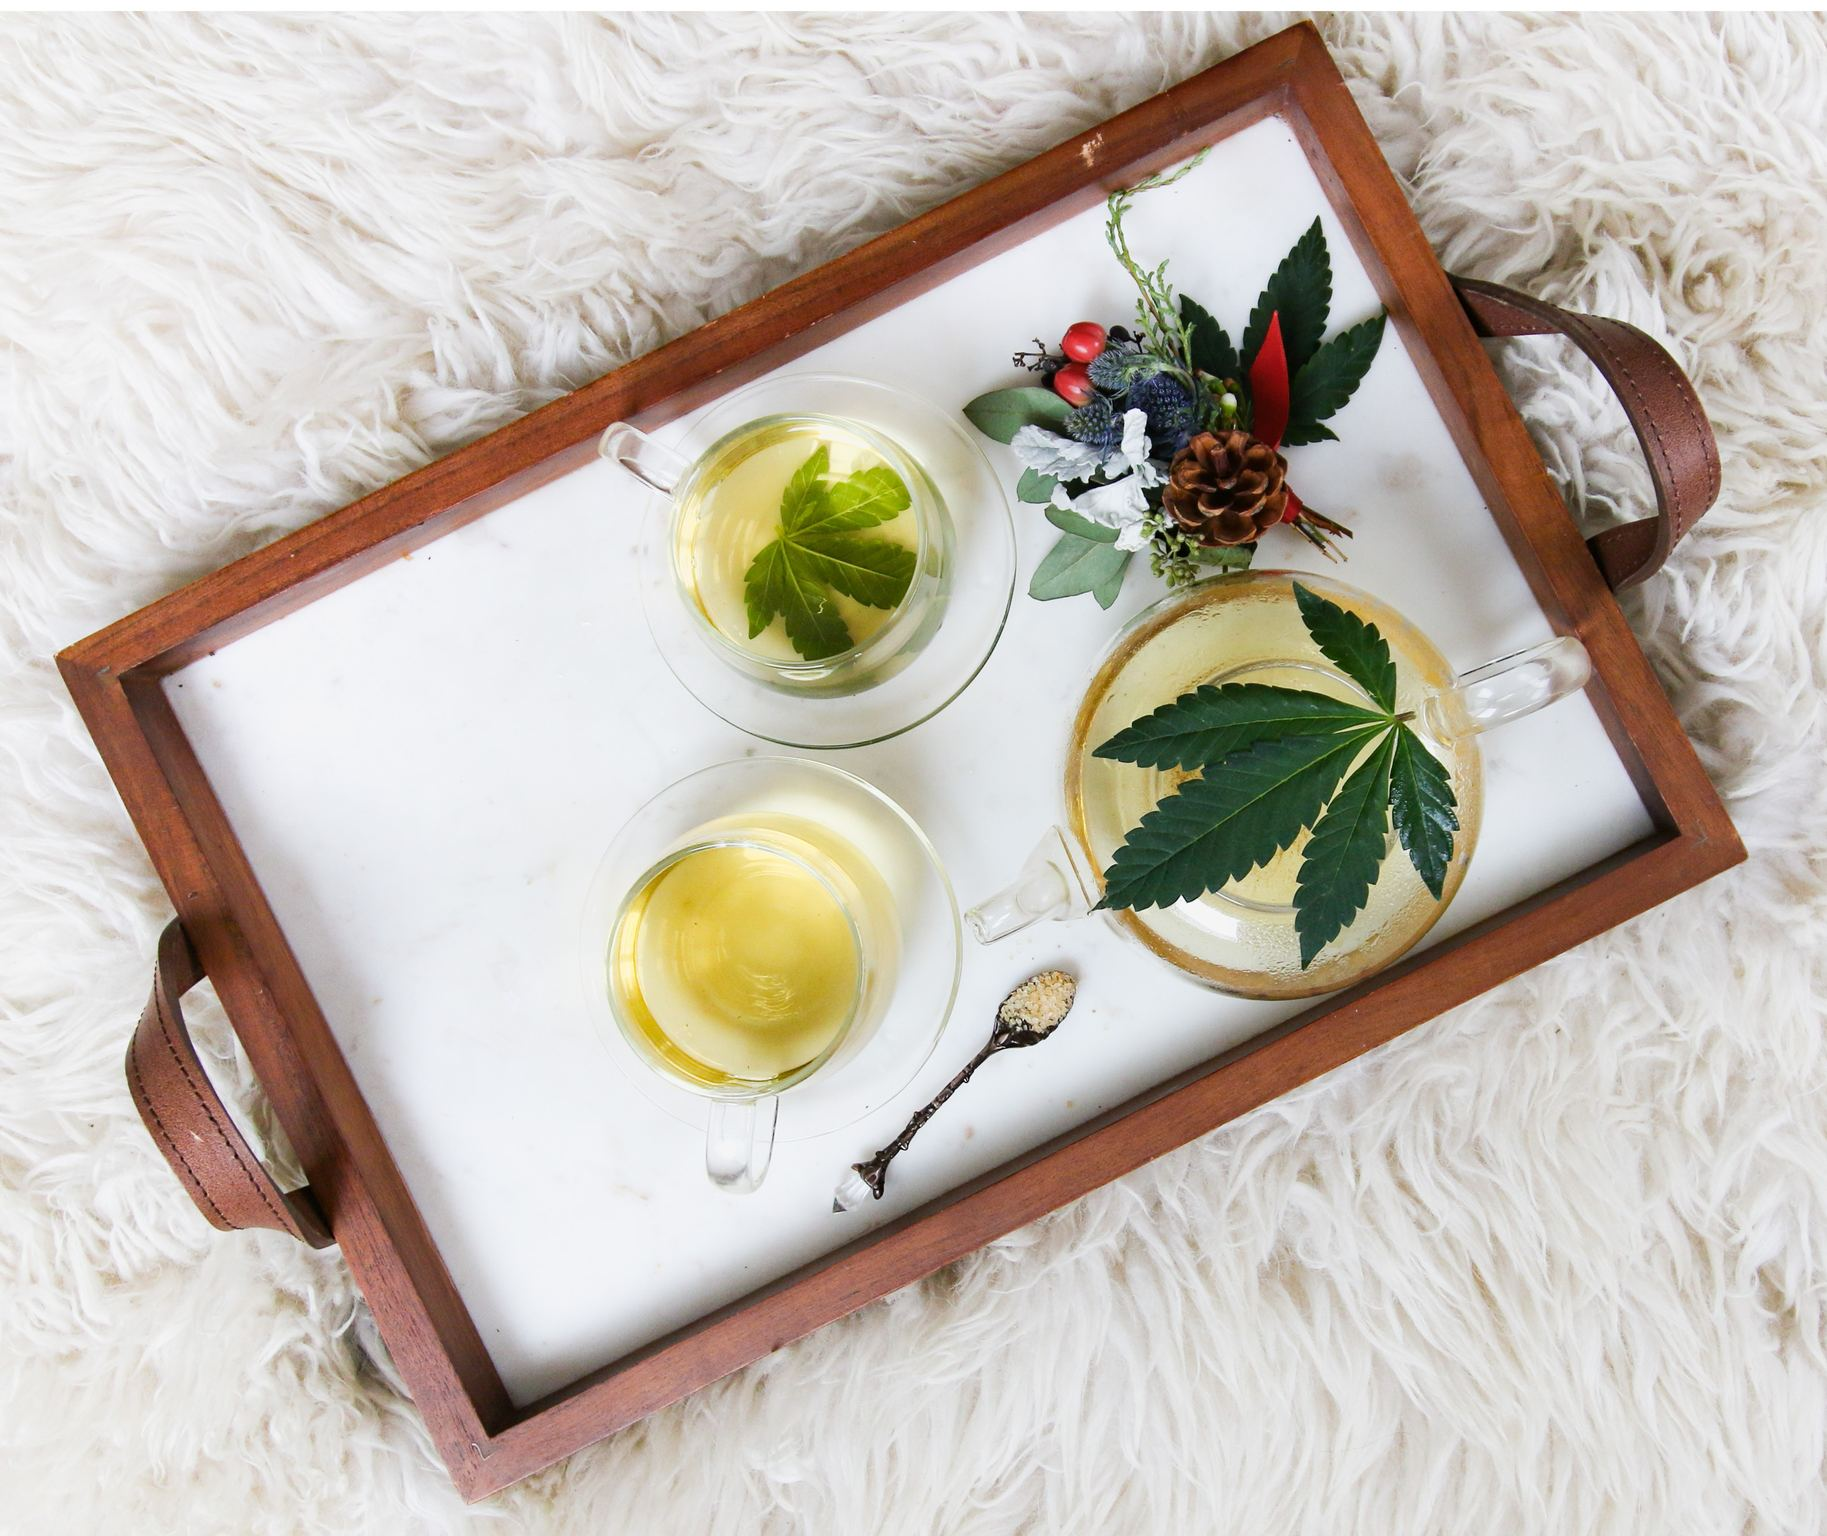 Terpinolele terpenes occur in tea tree and cannabis